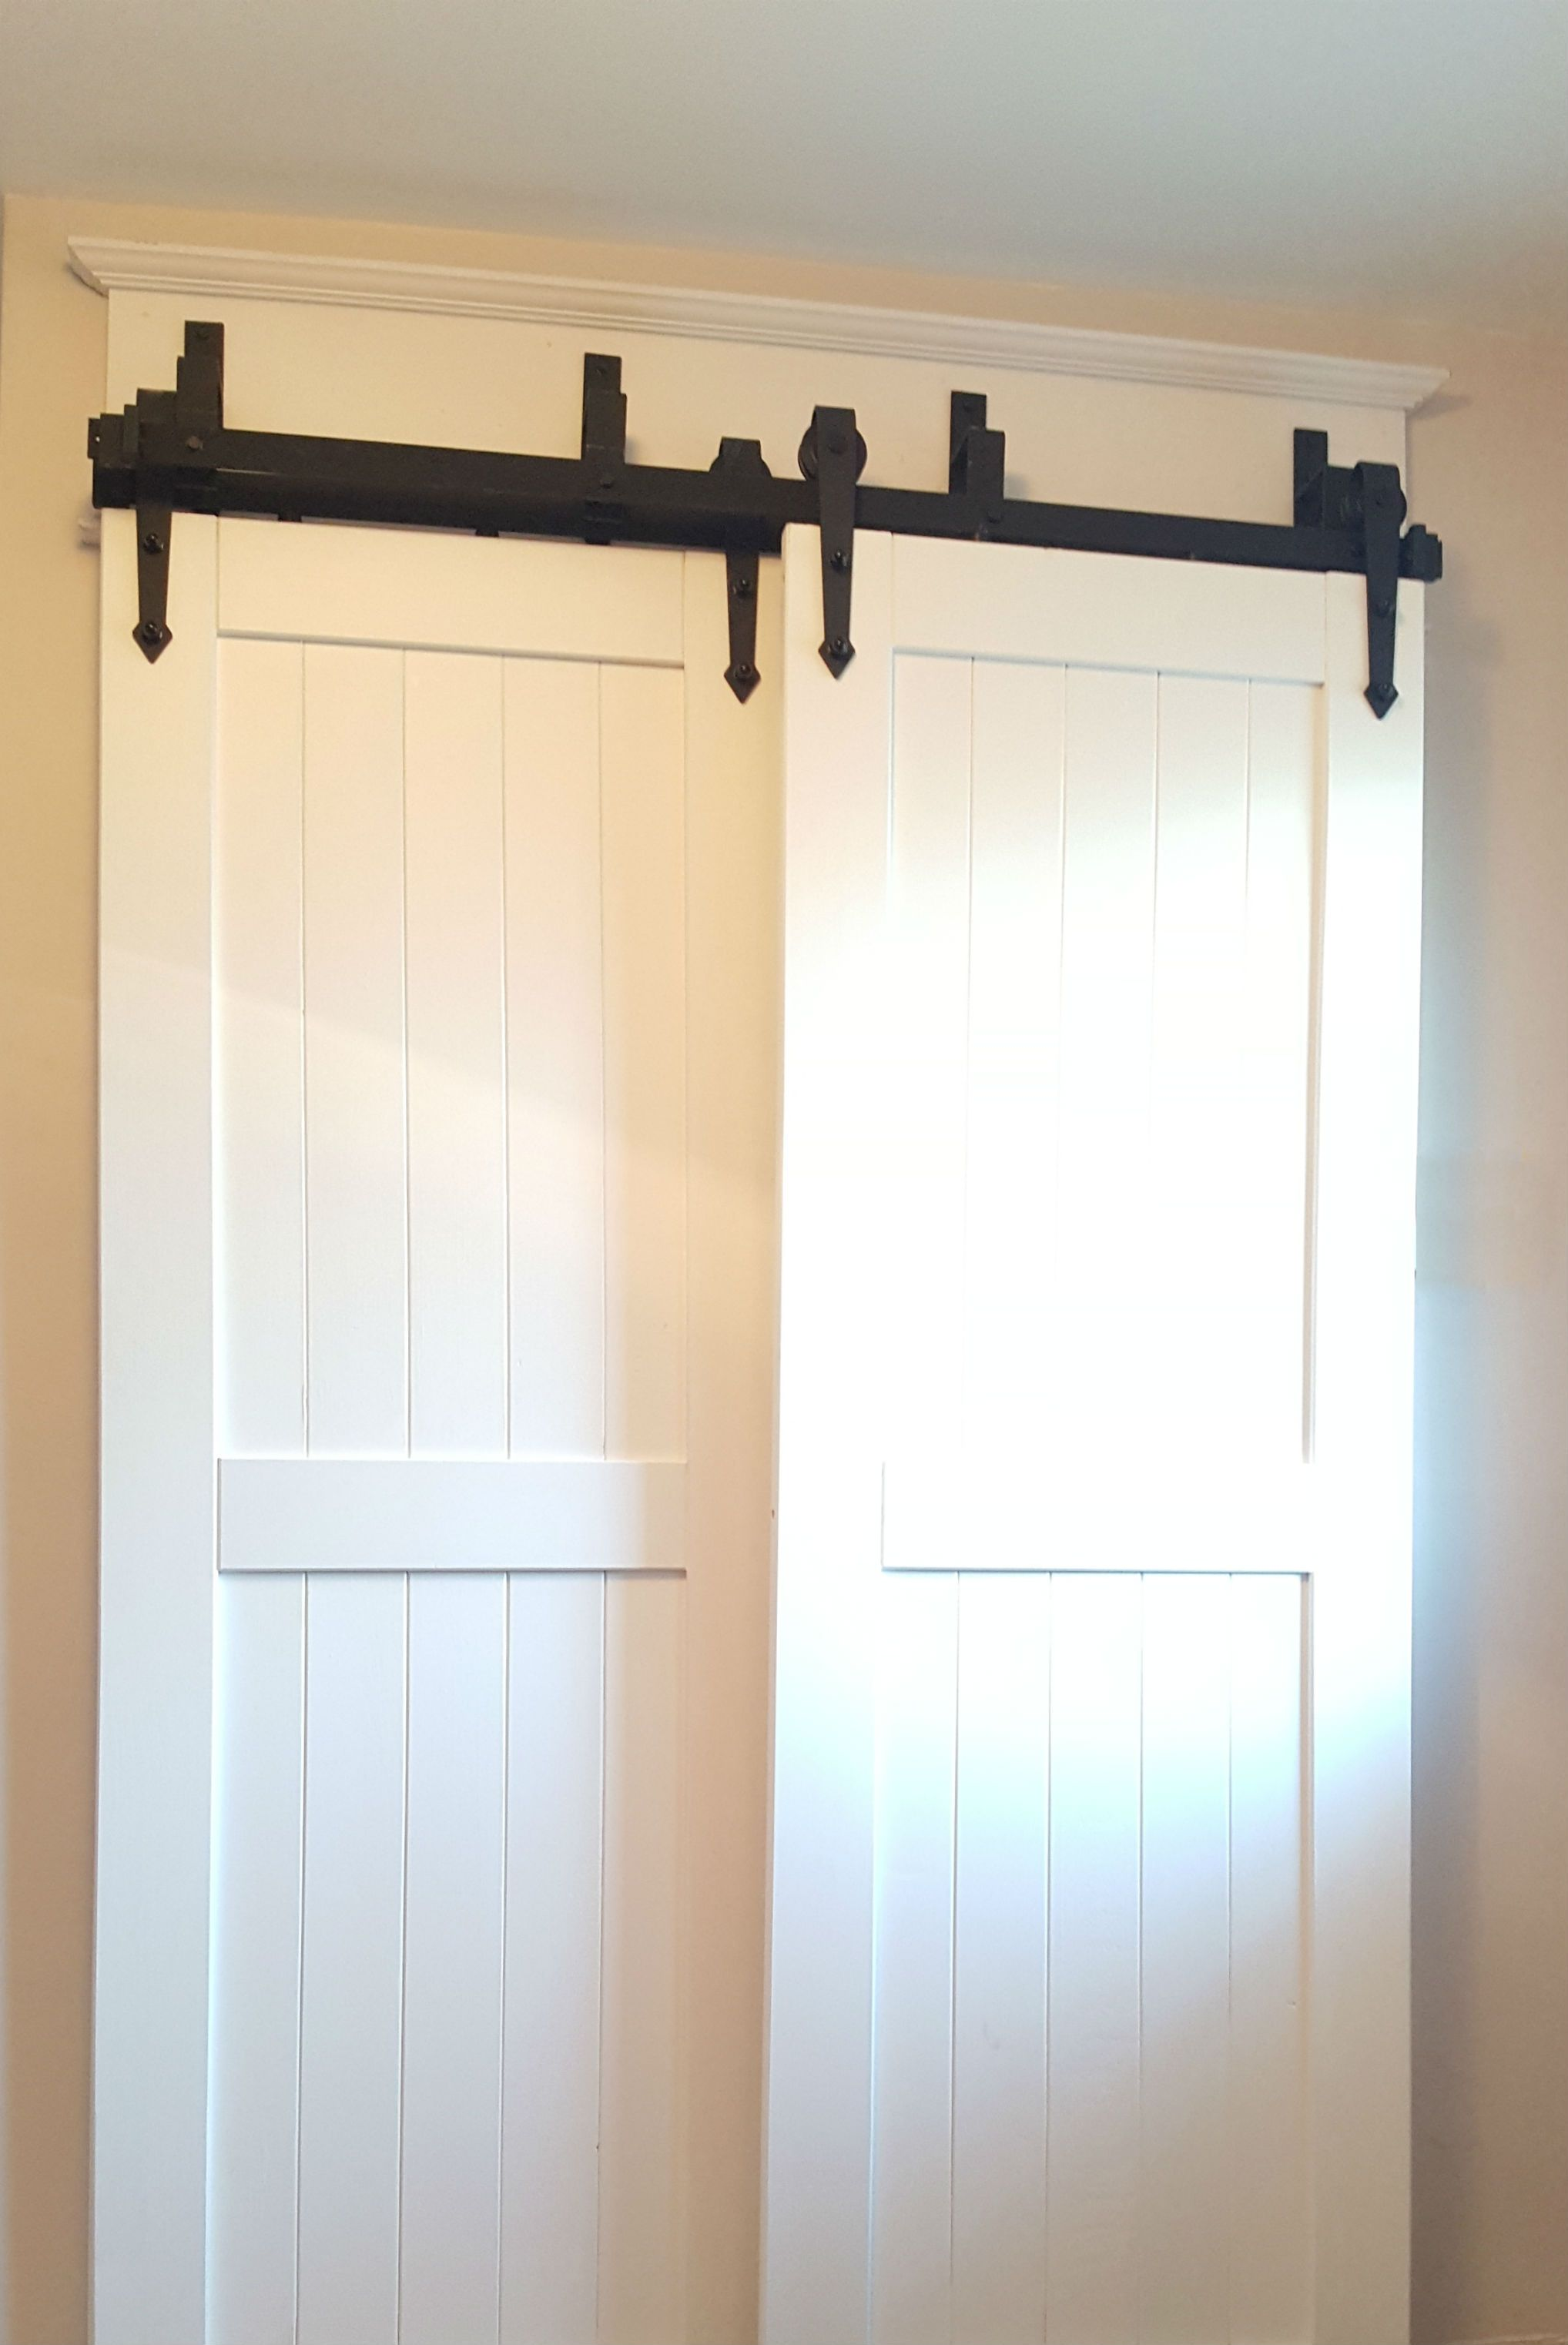 Bypass Barn Door Hardware Easy To Install Canada For The Home In